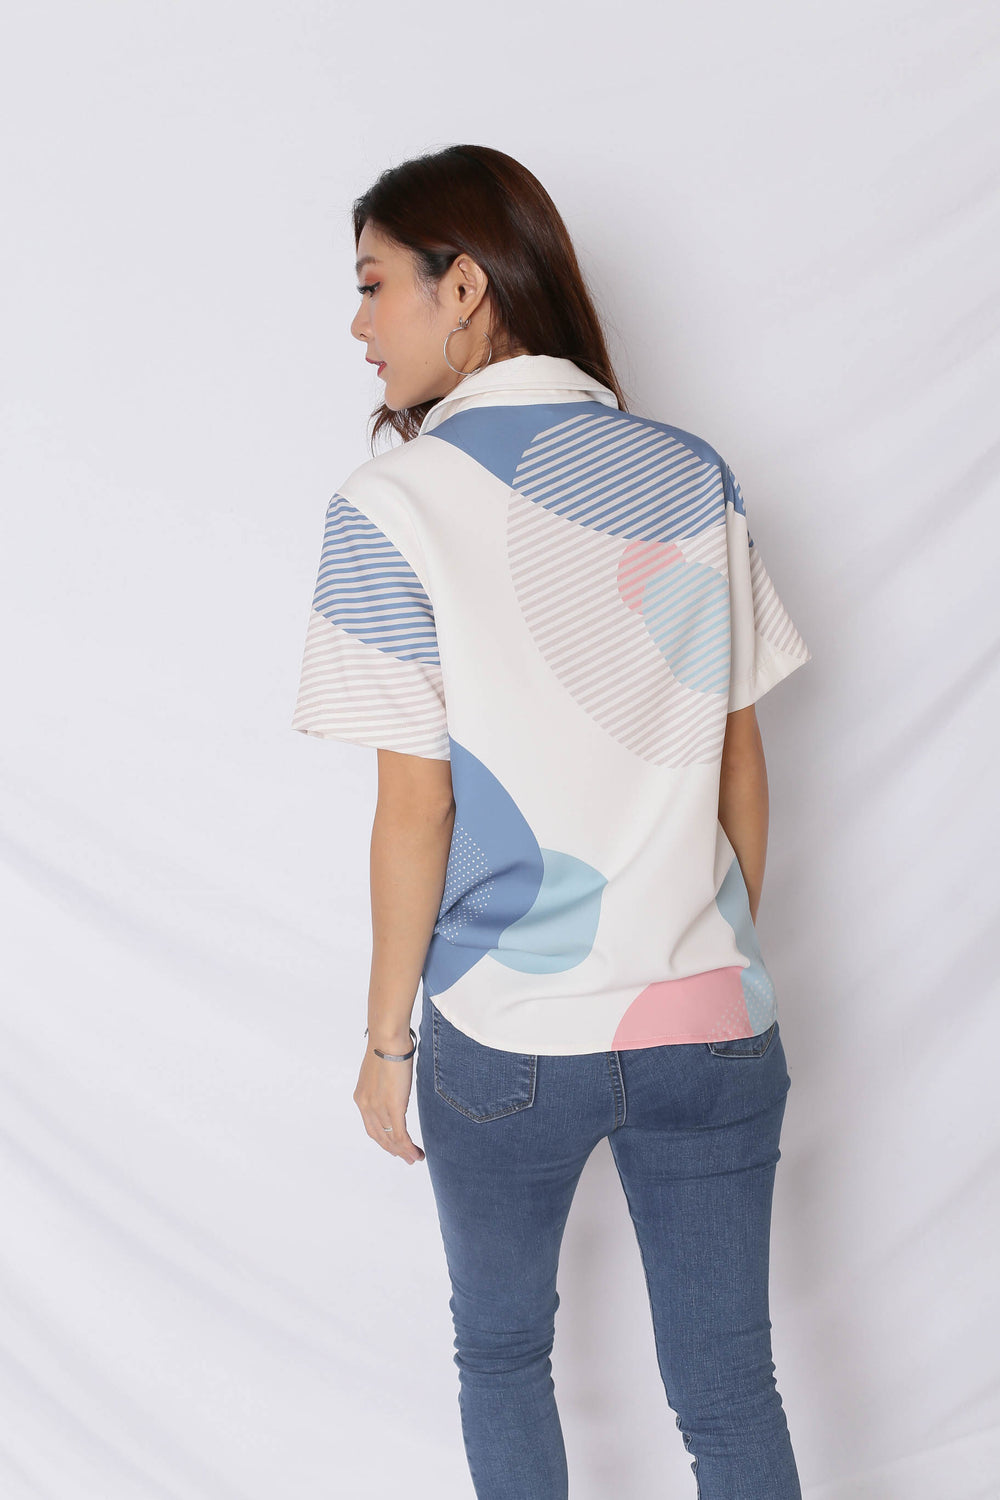 (PREMIUM) THE GEOMETRIC COLLECTION UNISEX SHIRT (VERSION 2) PINK/ BLUE